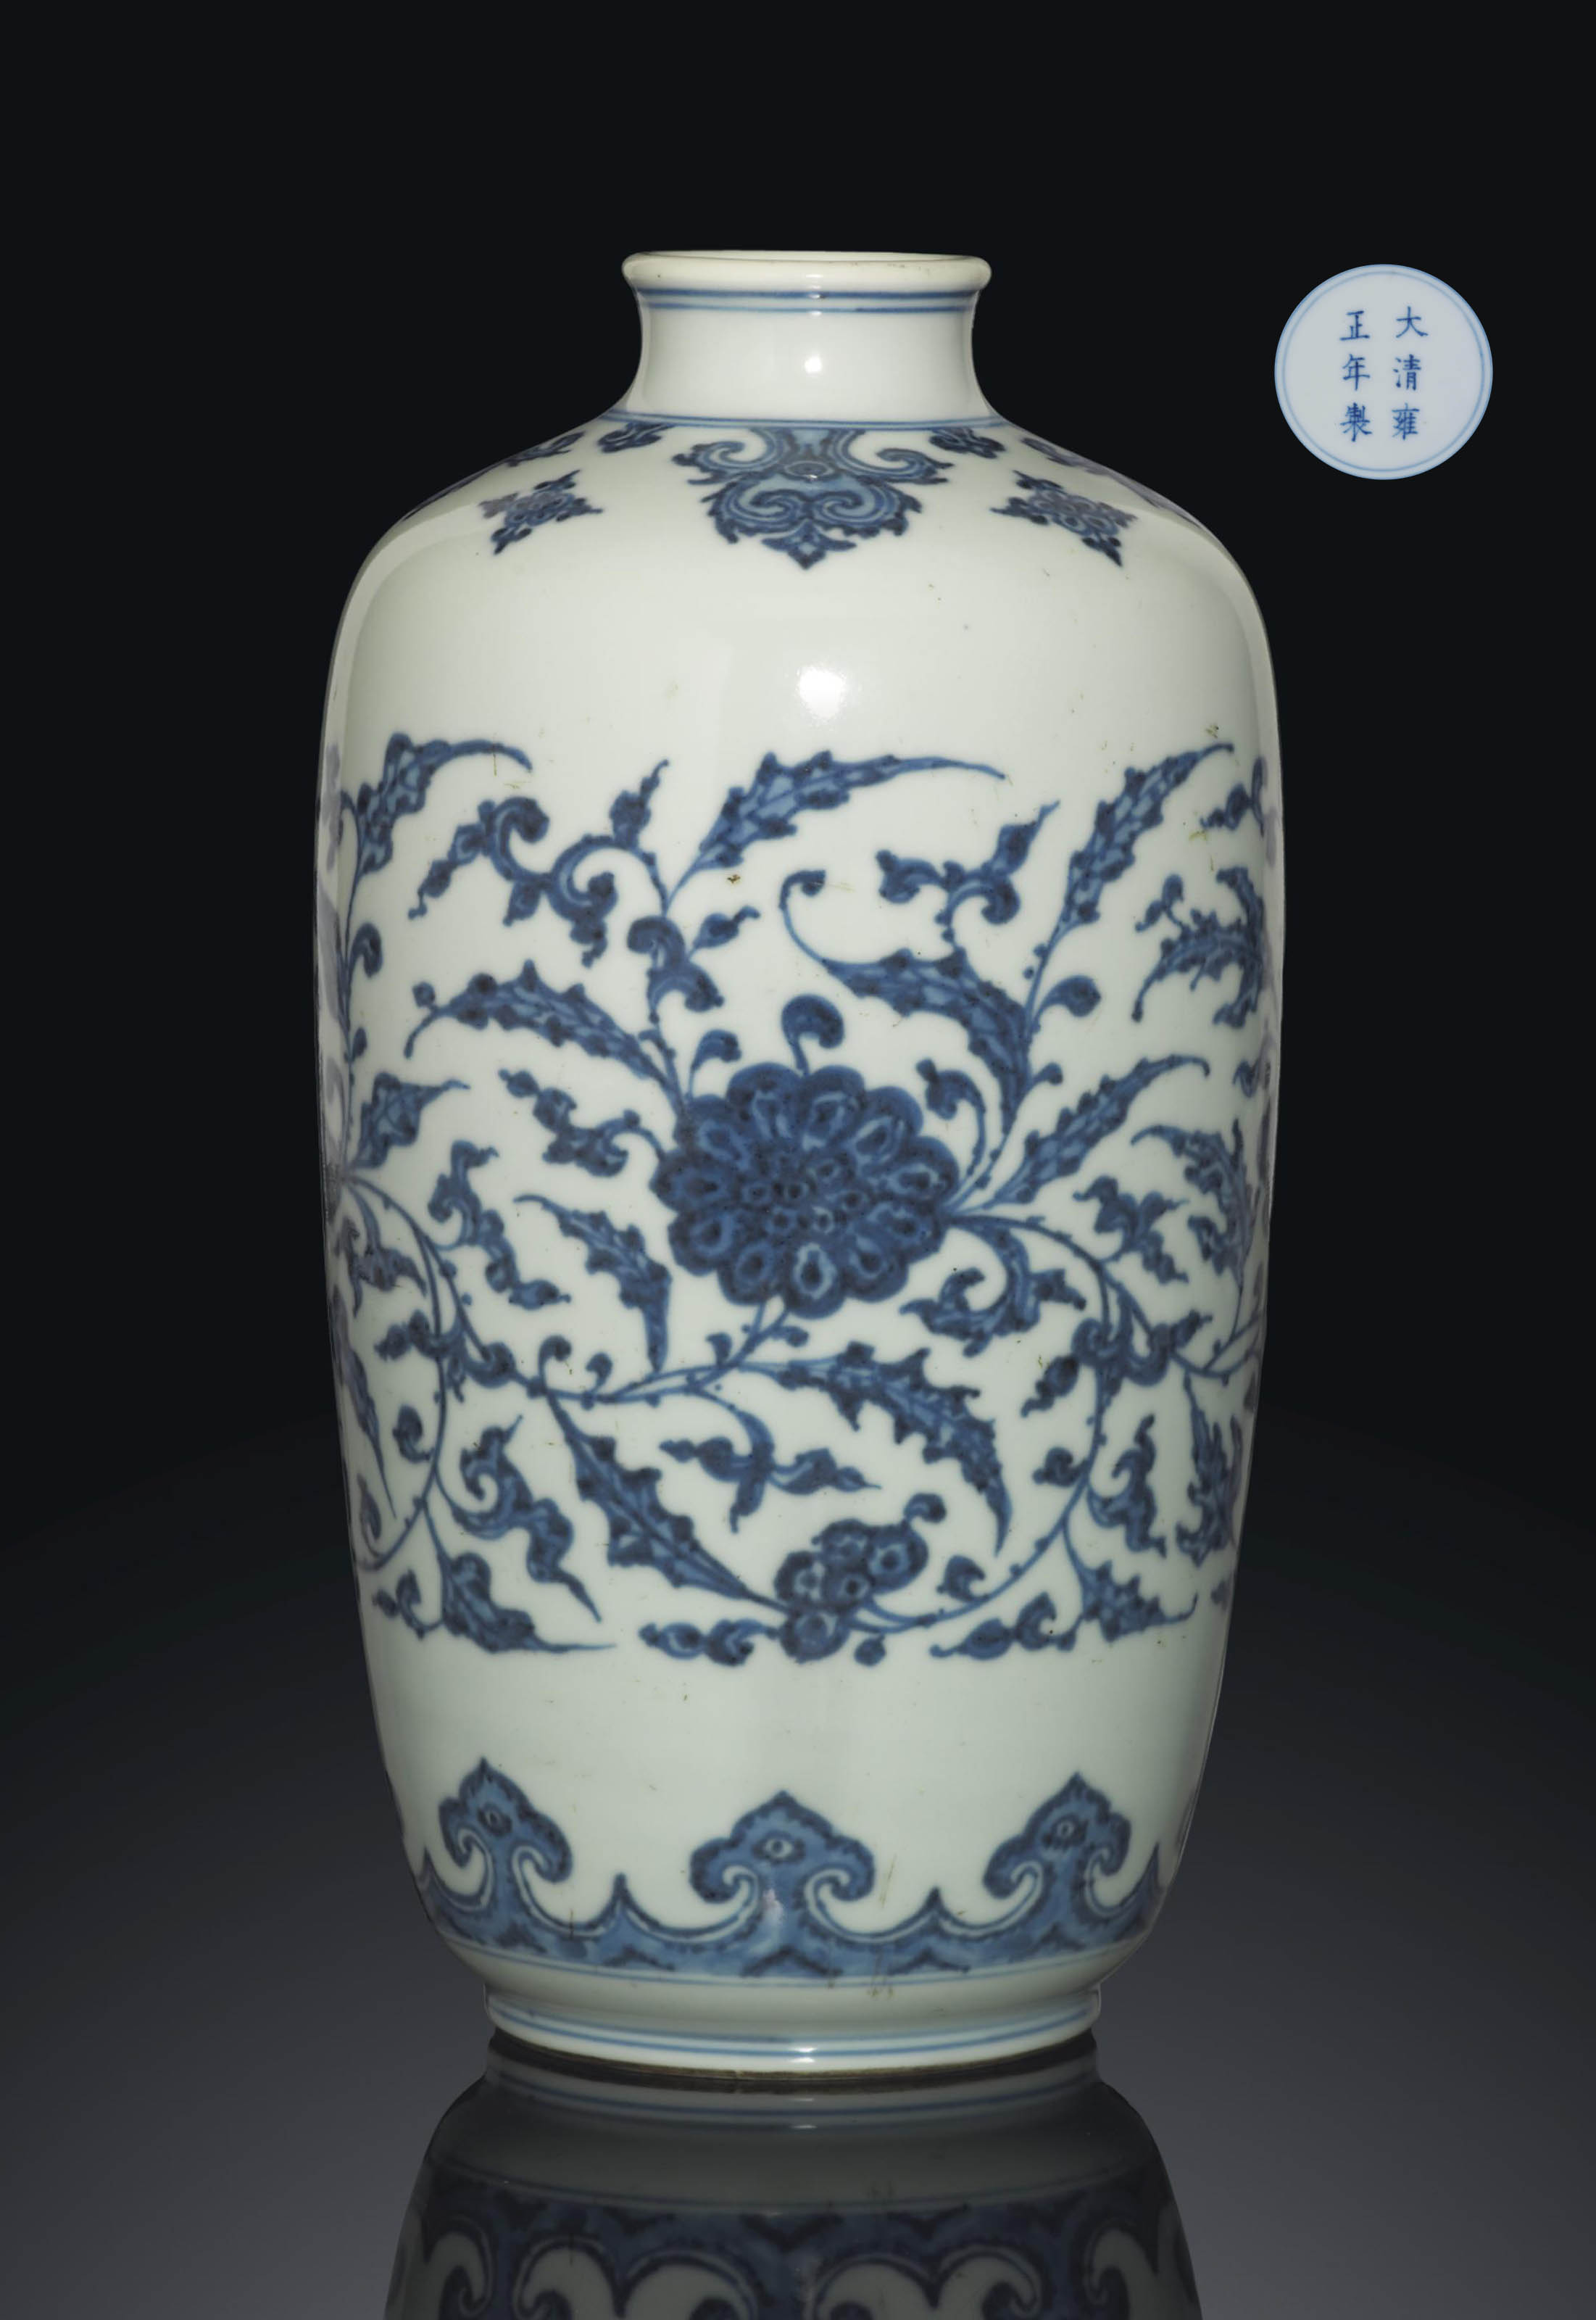 A RARE BLUE AND WHITE CYLINDRICAL VASE